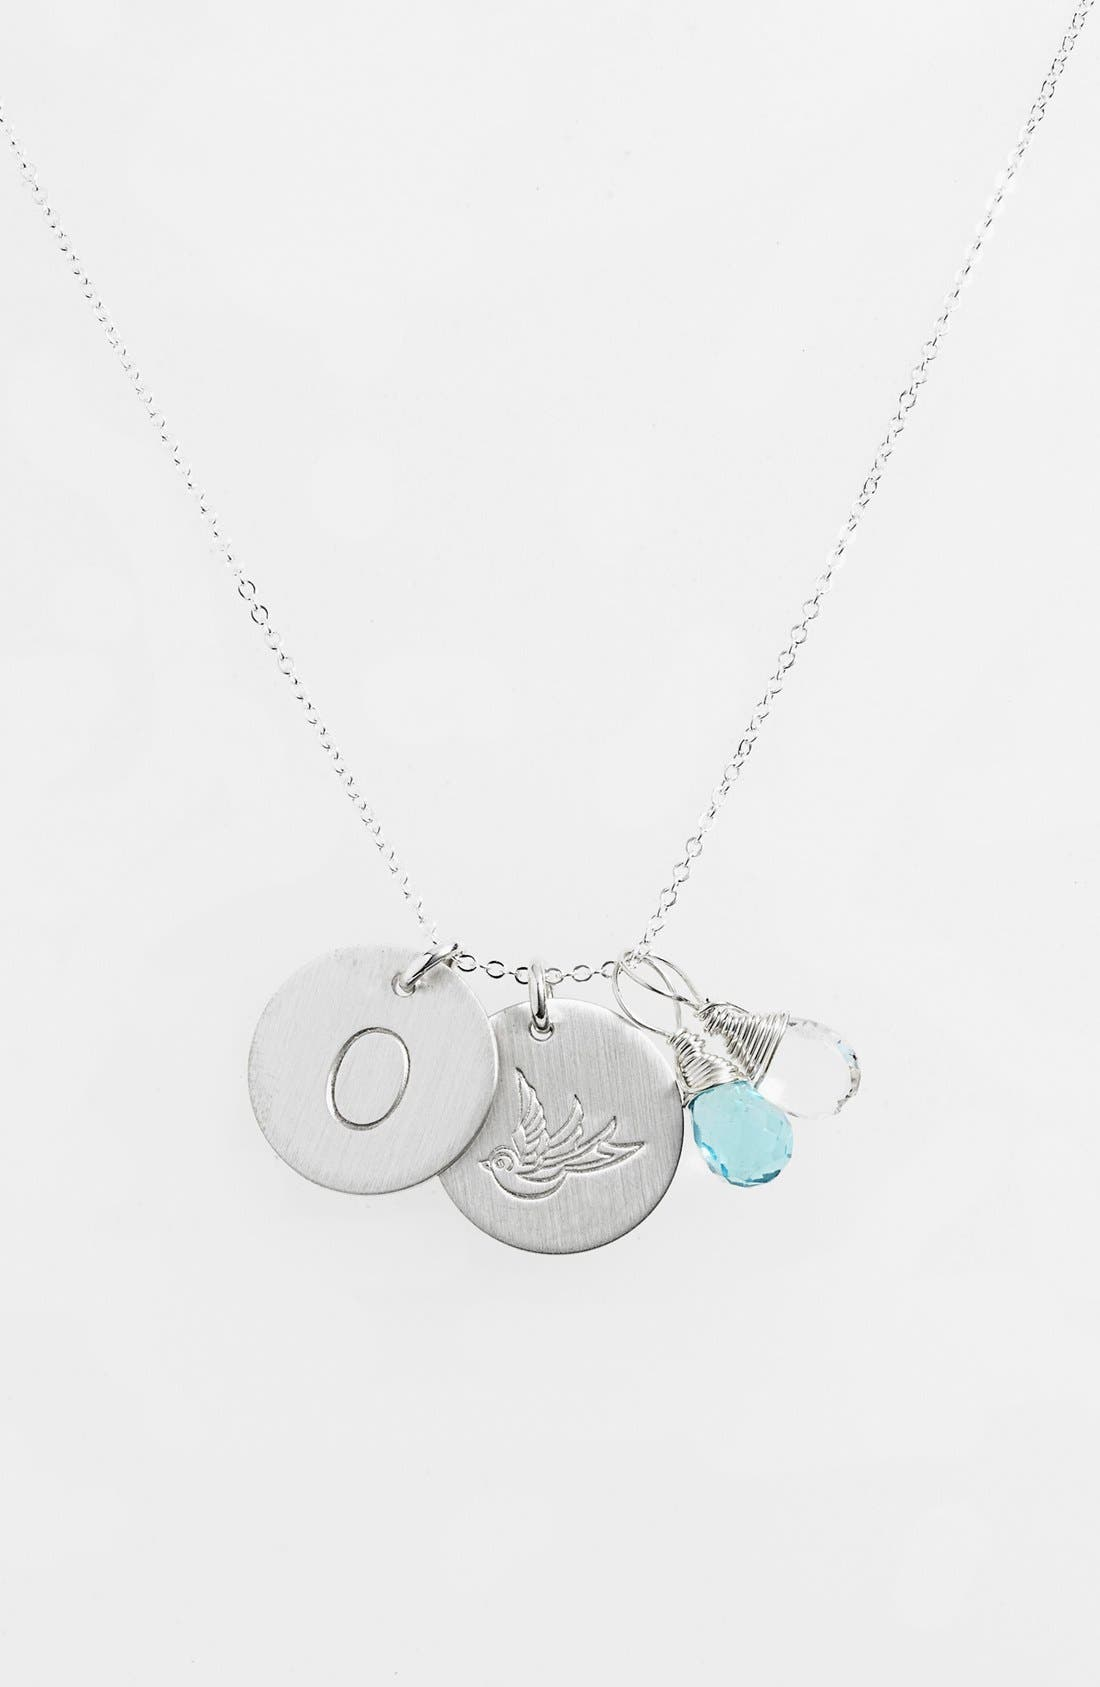 Ocean Blue & Crystal Swallow Sterling Silver Initial Disc Necklace,                             Main thumbnail 1, color,                             OCEAN BLUE AND CRYSTAL O